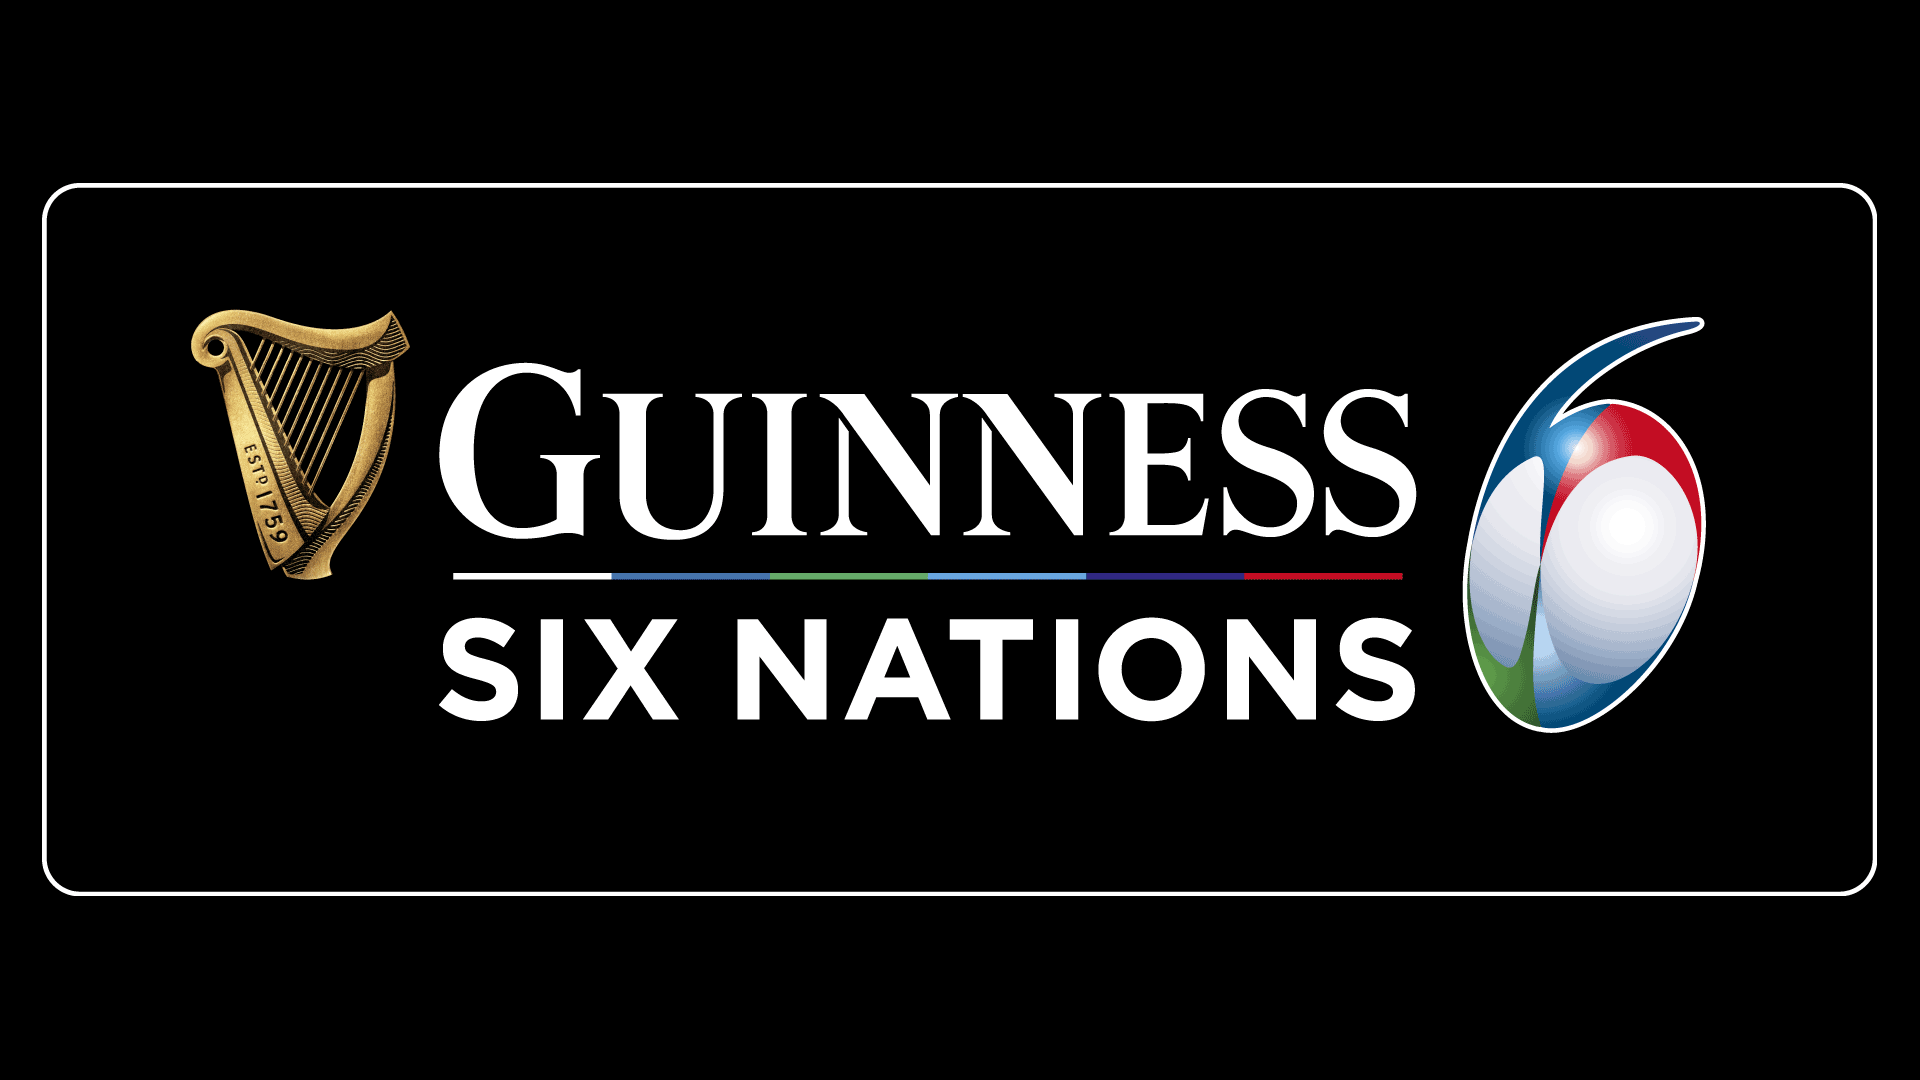 Calendrier Tournoi Des 6 Nations 2020.Six Nations Rugby Fixtures 2020